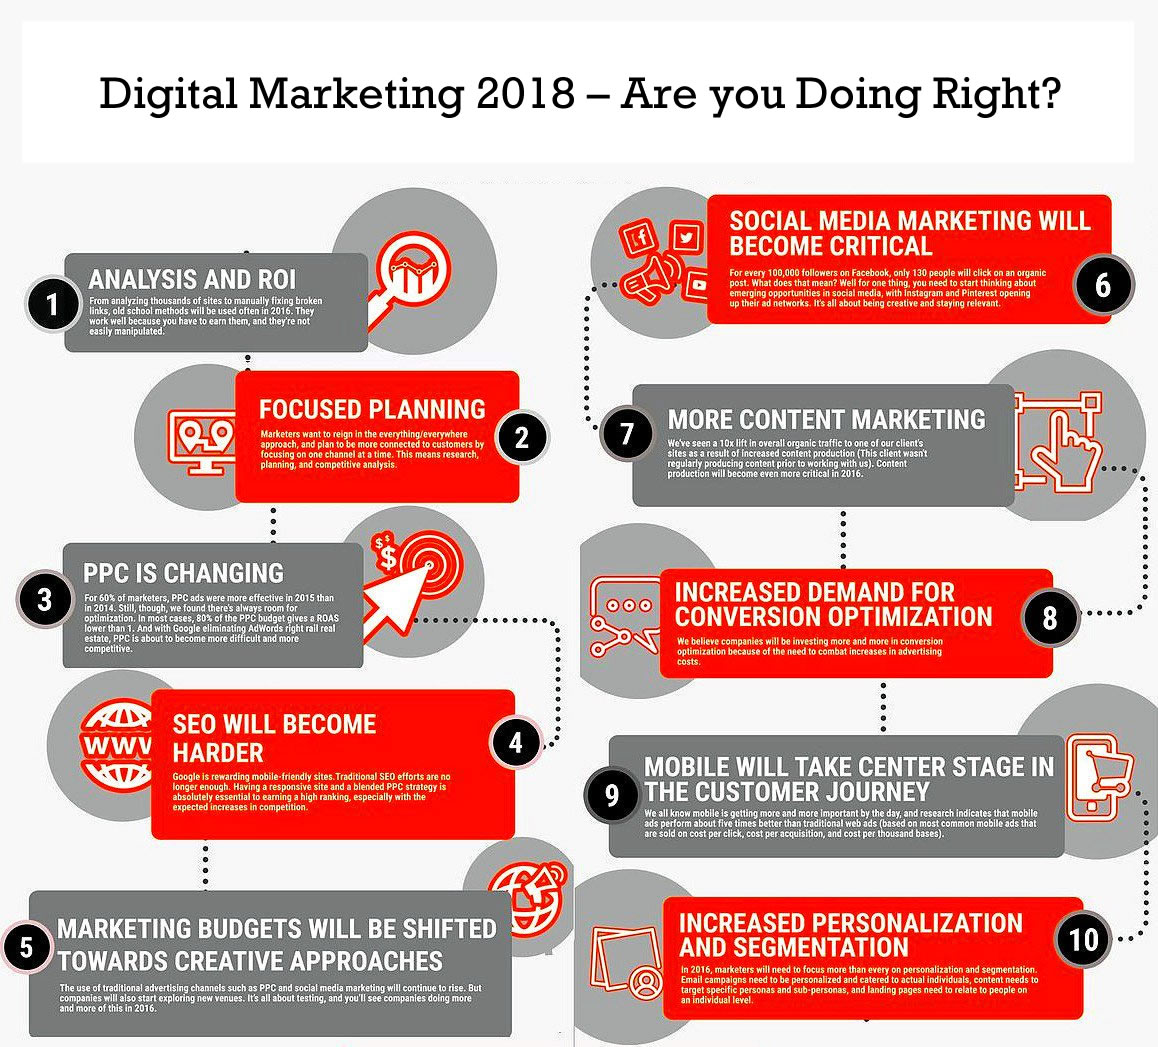 Digital Marketing 2018 – Are you Doing Right?